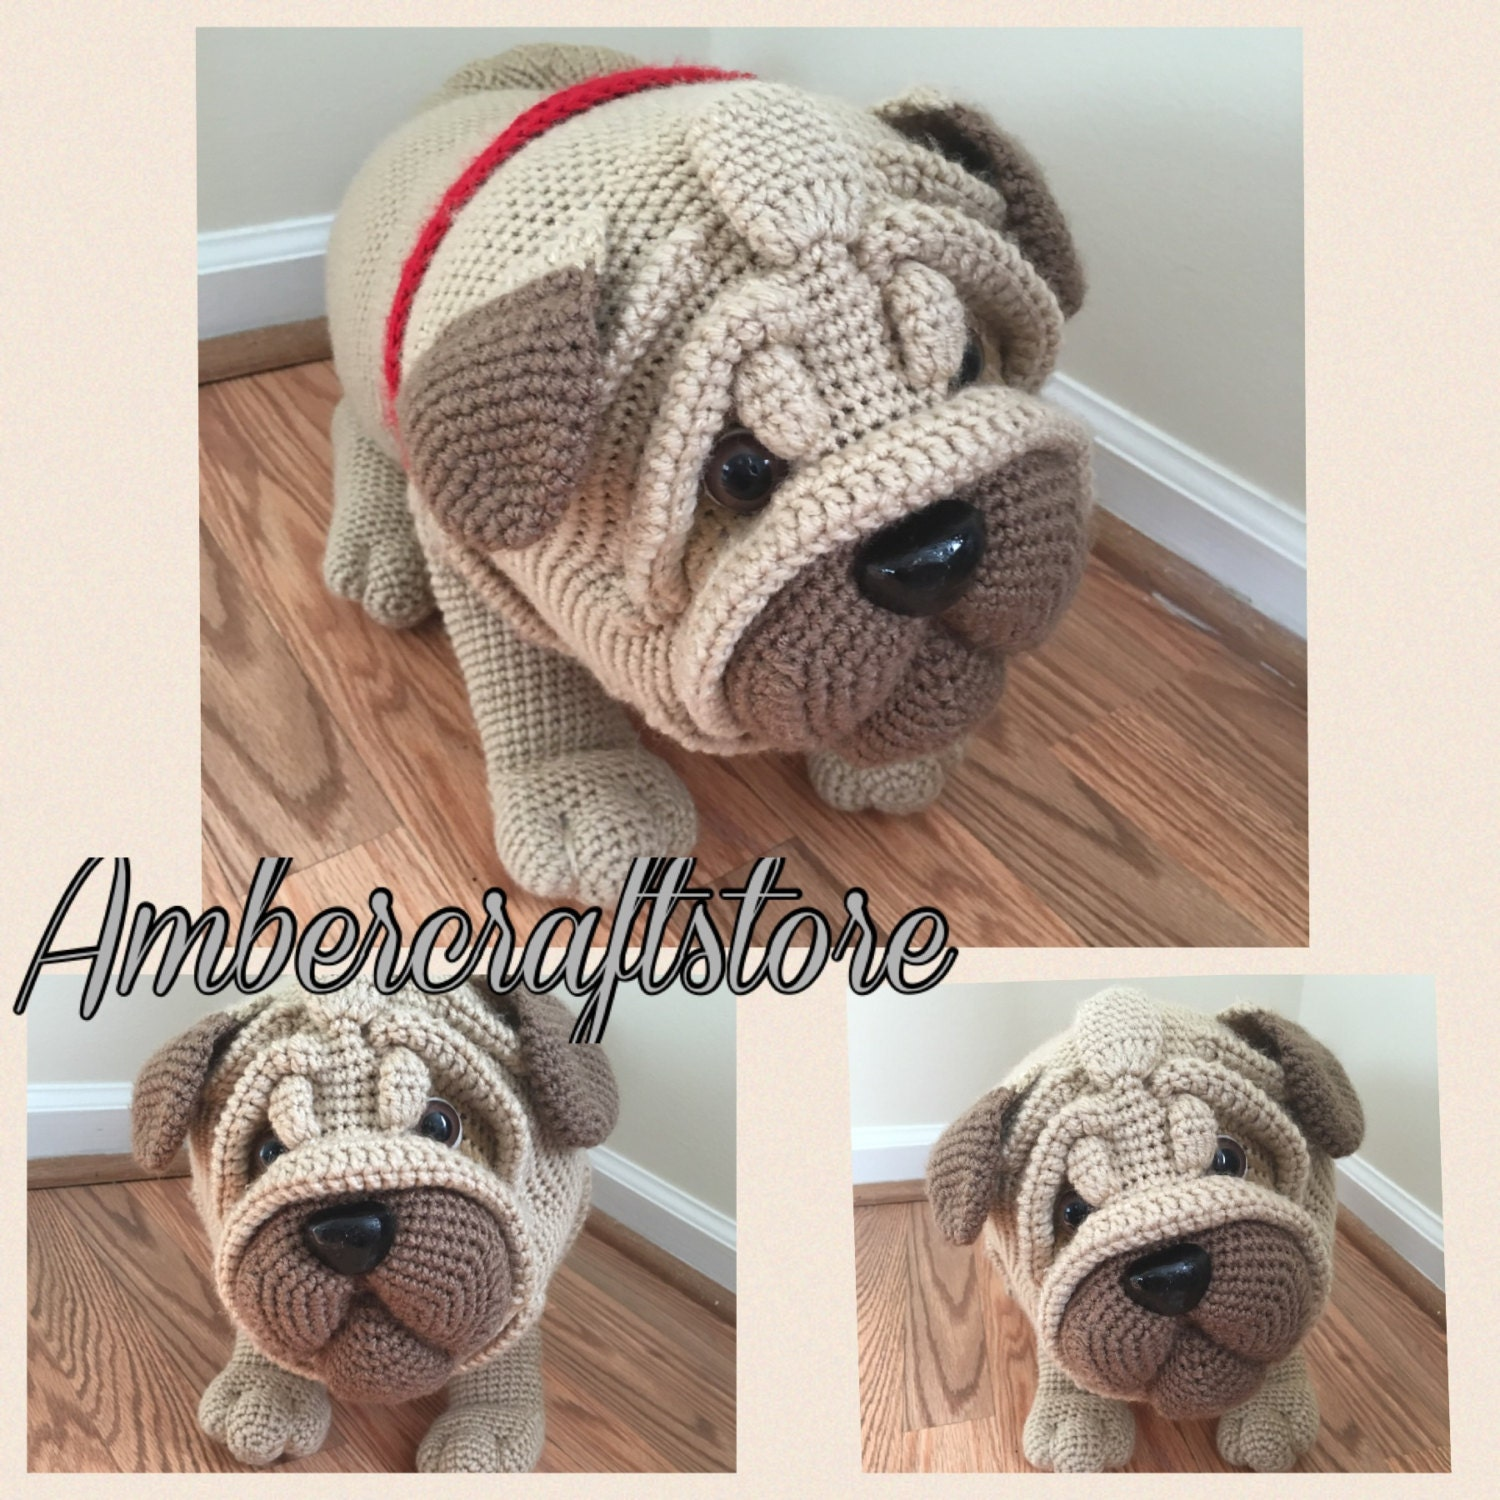 Free Crochet Pattern For Pug Dog : Pug dog crochet pattern PDF. English USA